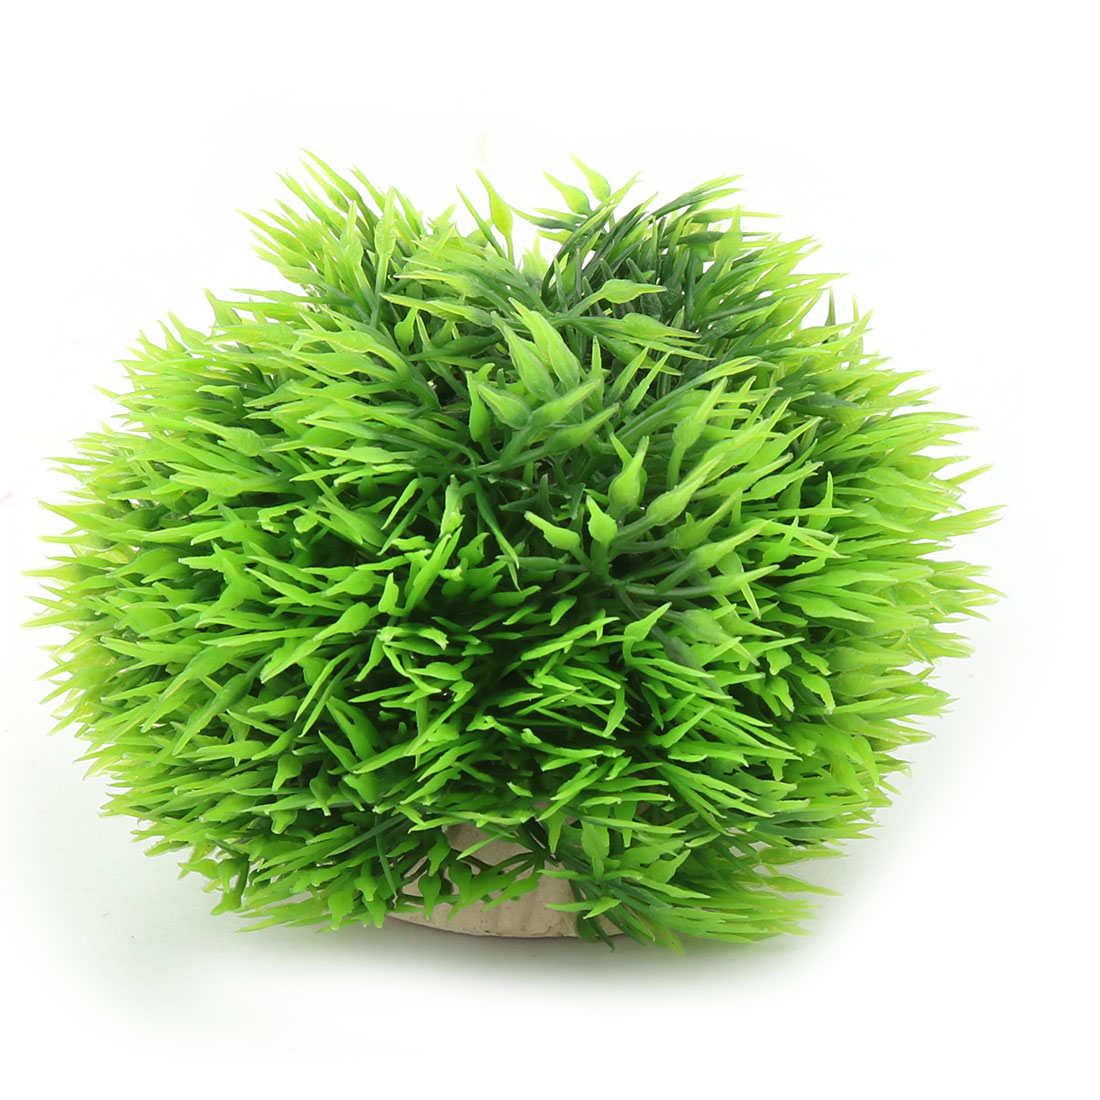 Aquarium Fish Tank Ceramic Base Plastic Ball Shape Artificial Plant Decor Green